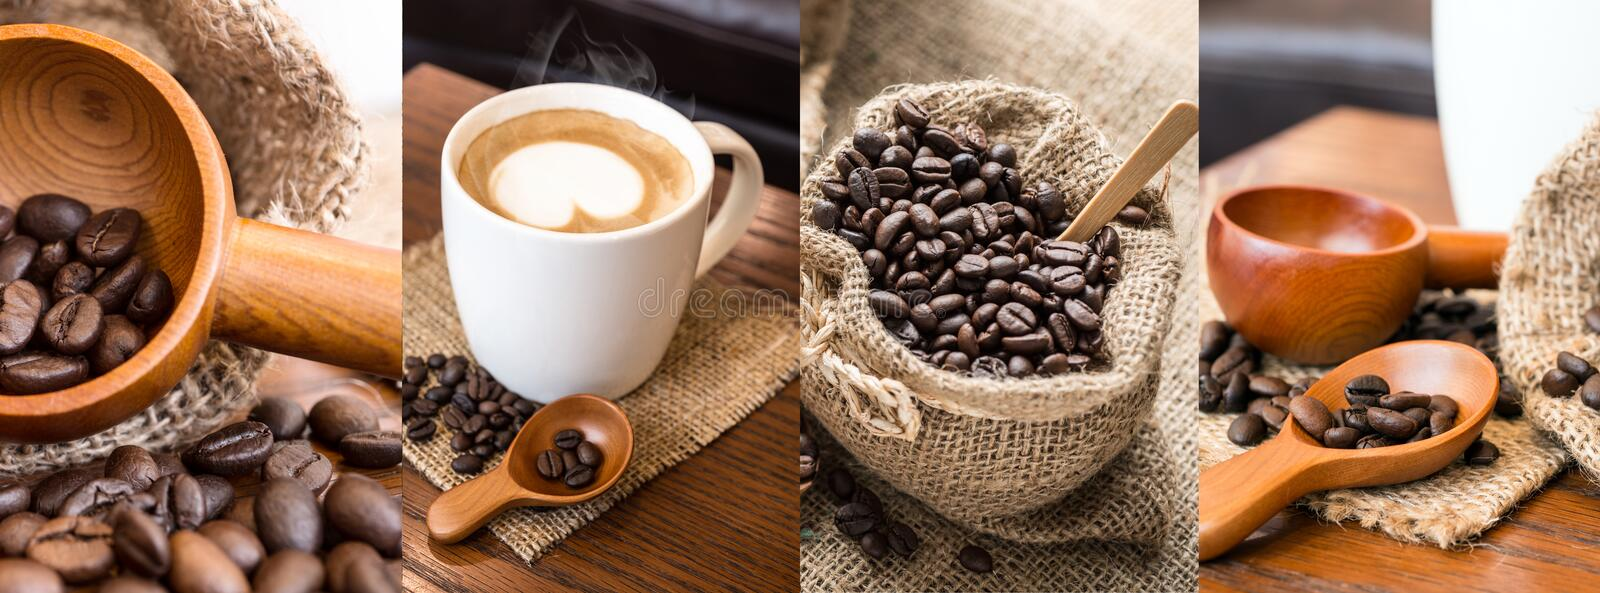 Collage photos of coffee royalty free stock images